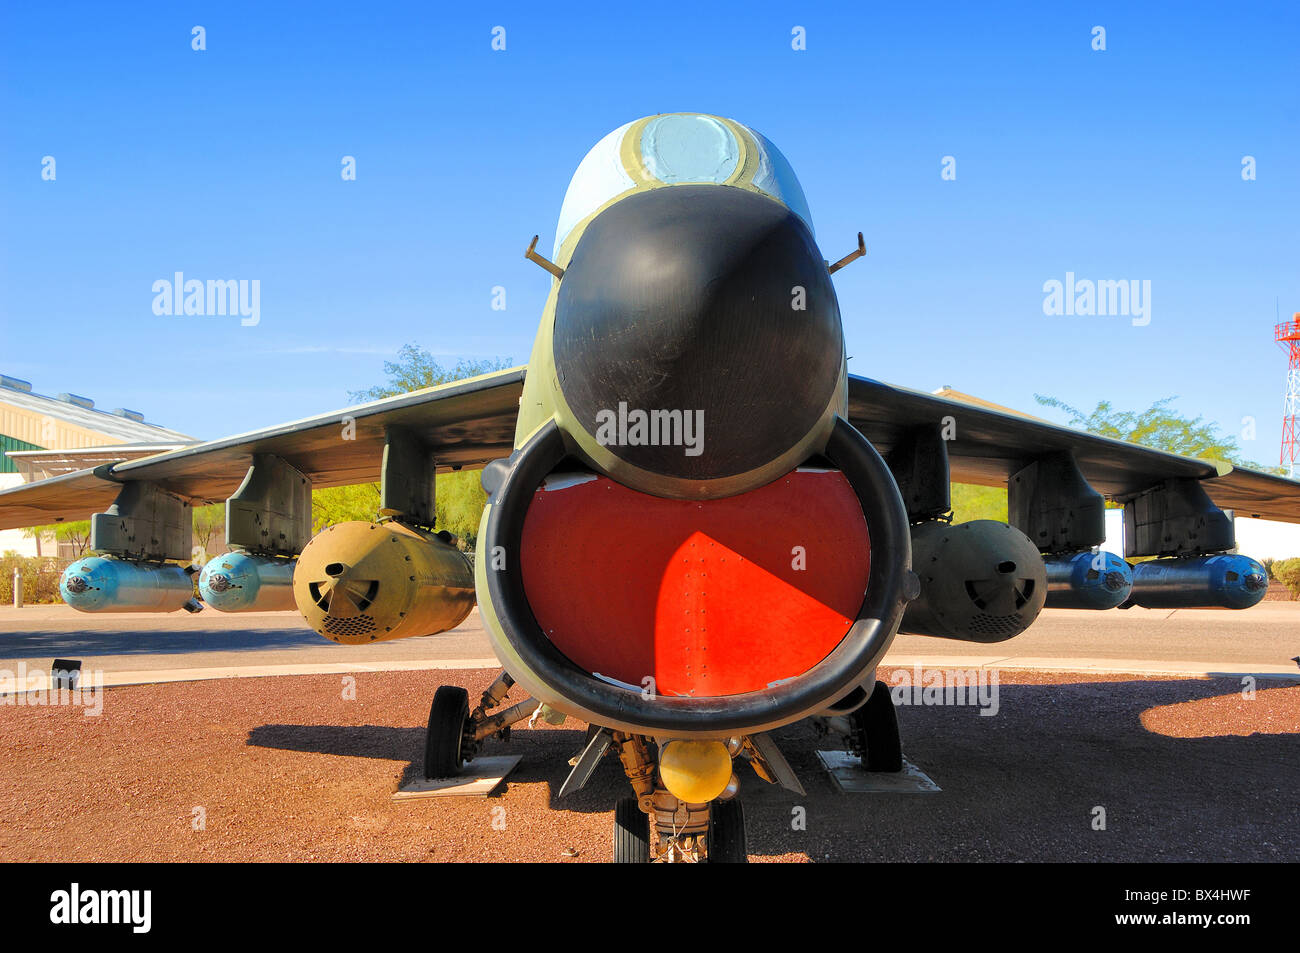 Vought A70 Corsair plane at Pima Air and Space Museum near Tucson in Arizona, United States of America. - Stock Image